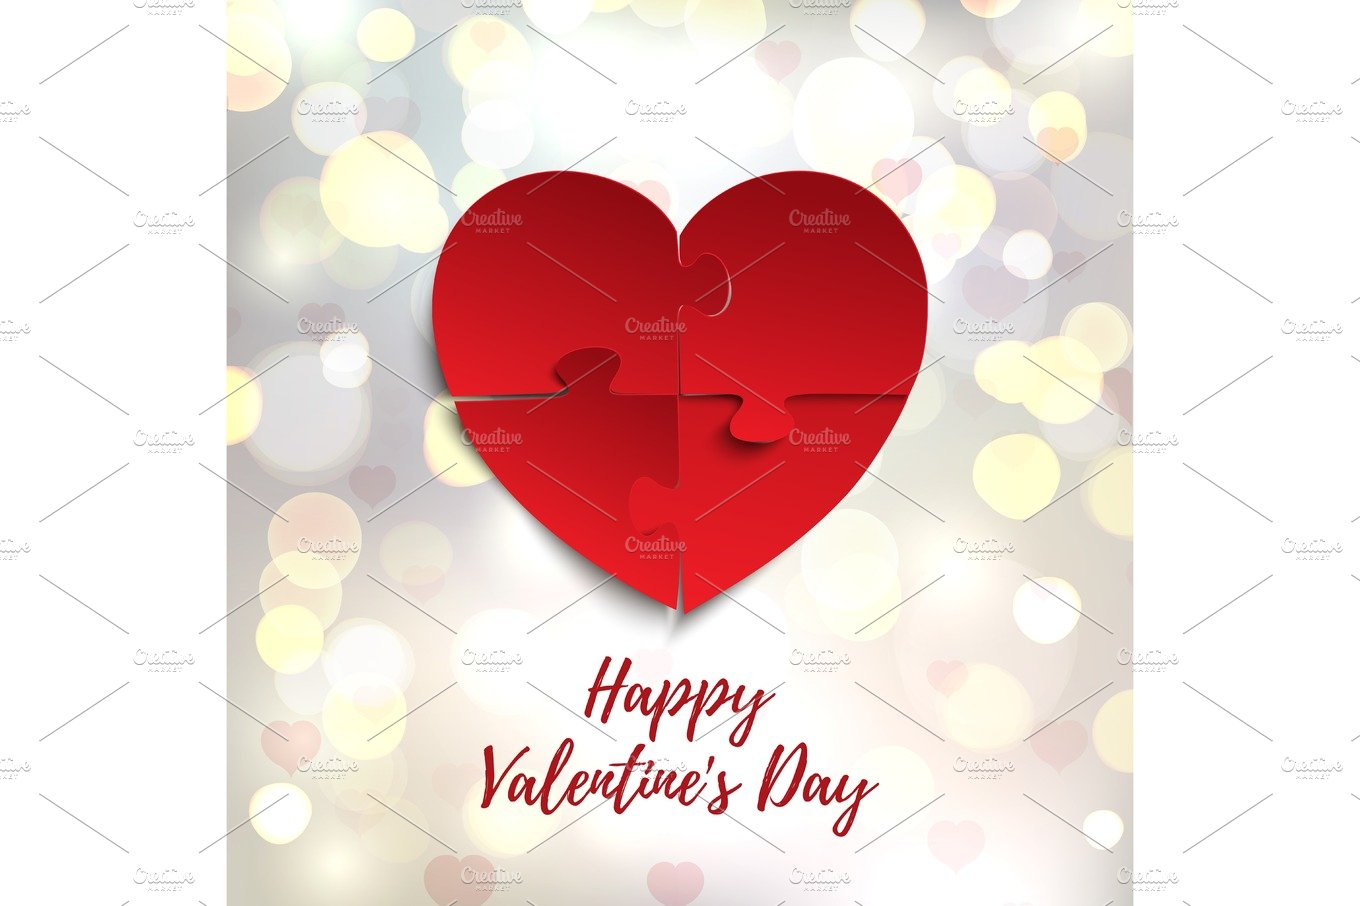 Happy Valentines Day Greeting Card Template Jigsaw Puzzle Pieces